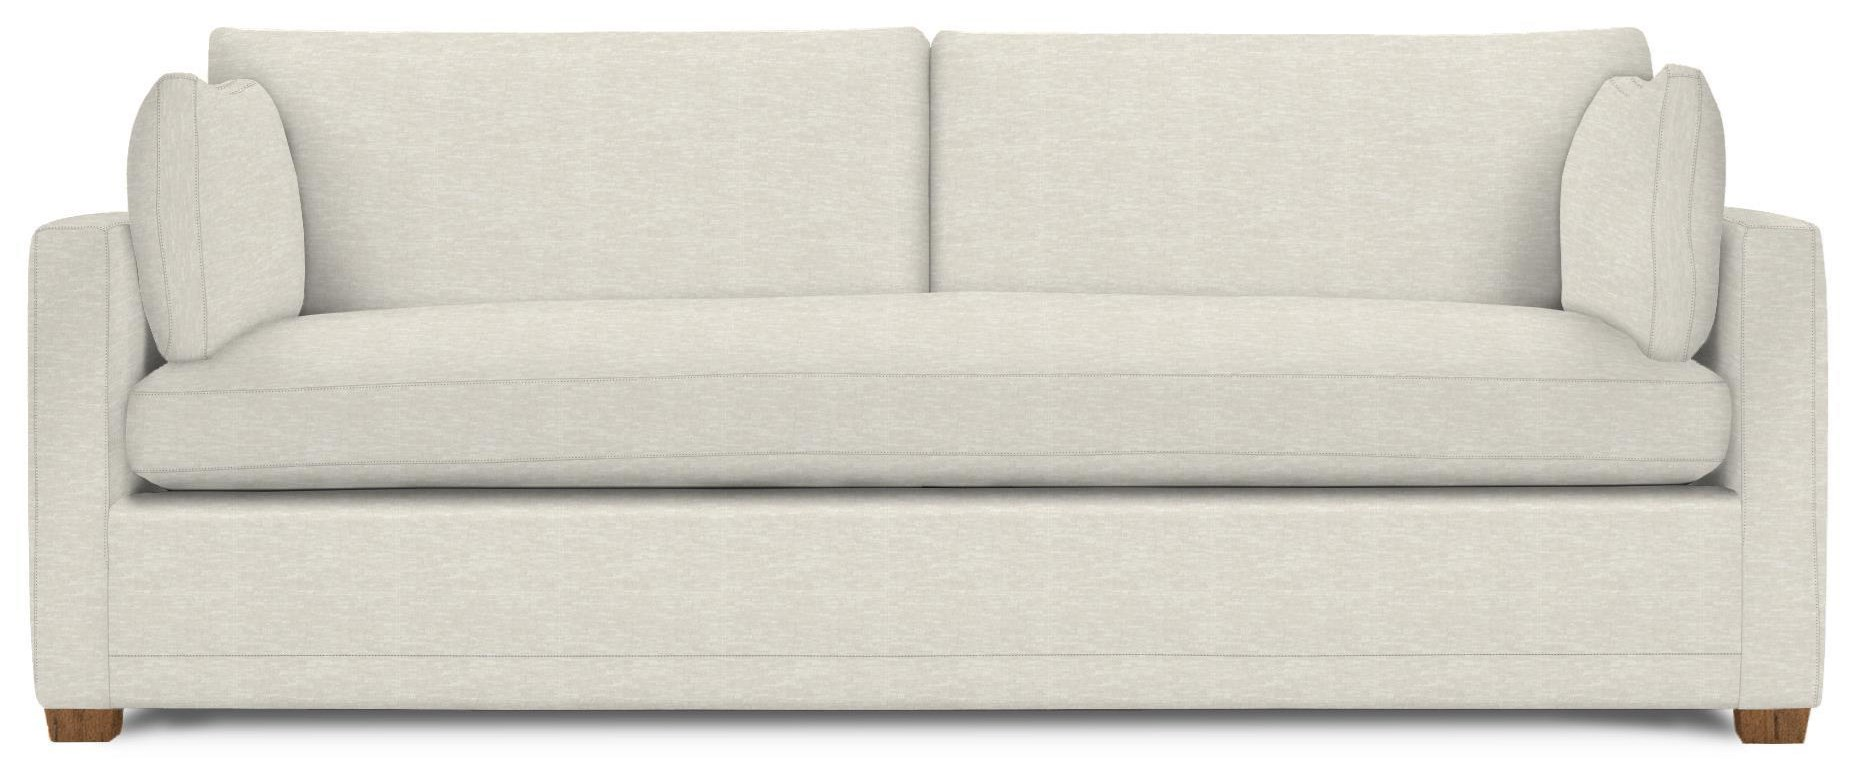 Sylvie Sofa Bench by Rowe at C. S. Wo & Sons California